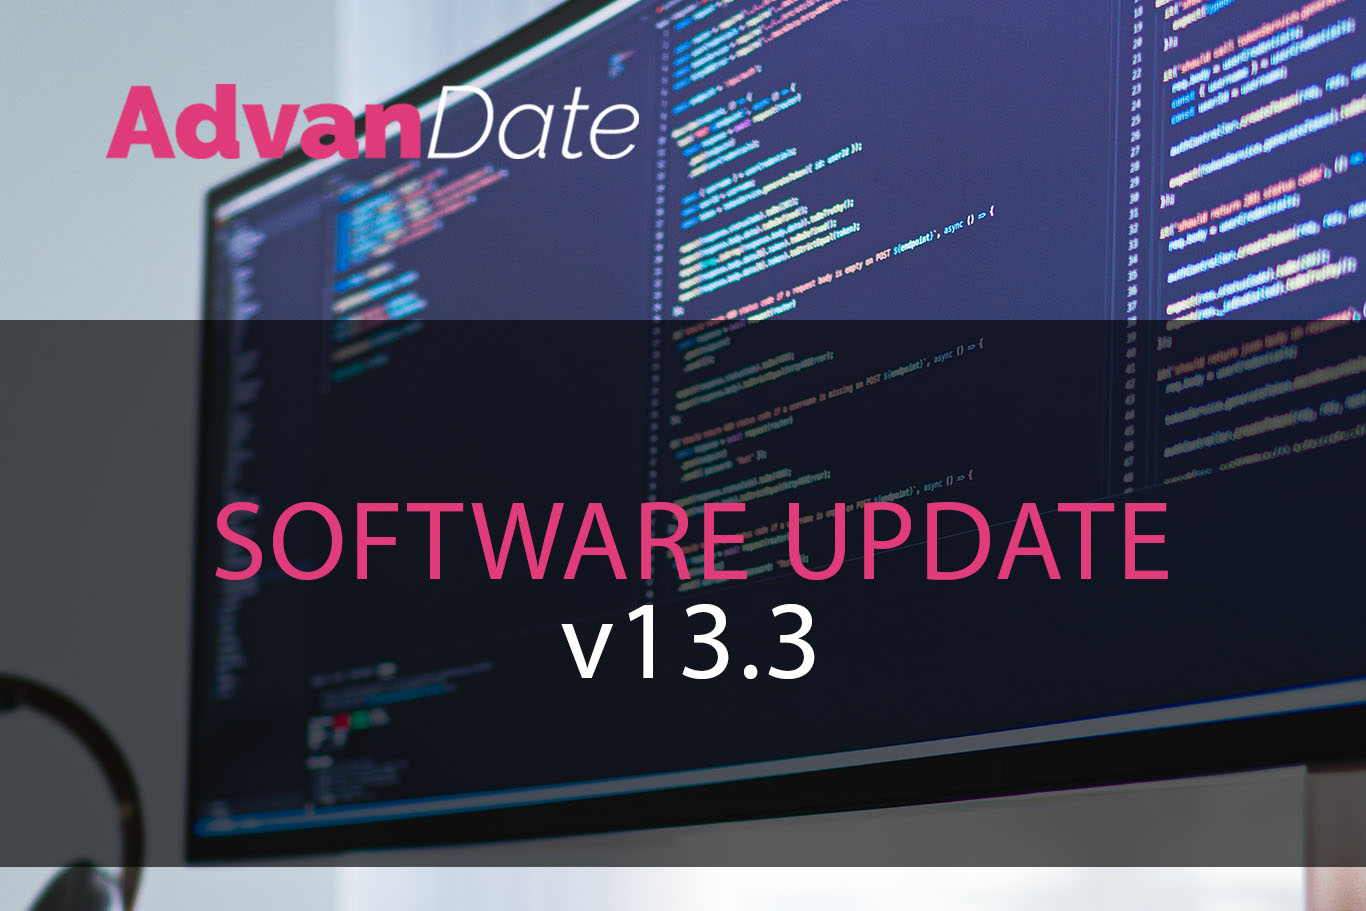 AdvanDate Software update v13.3